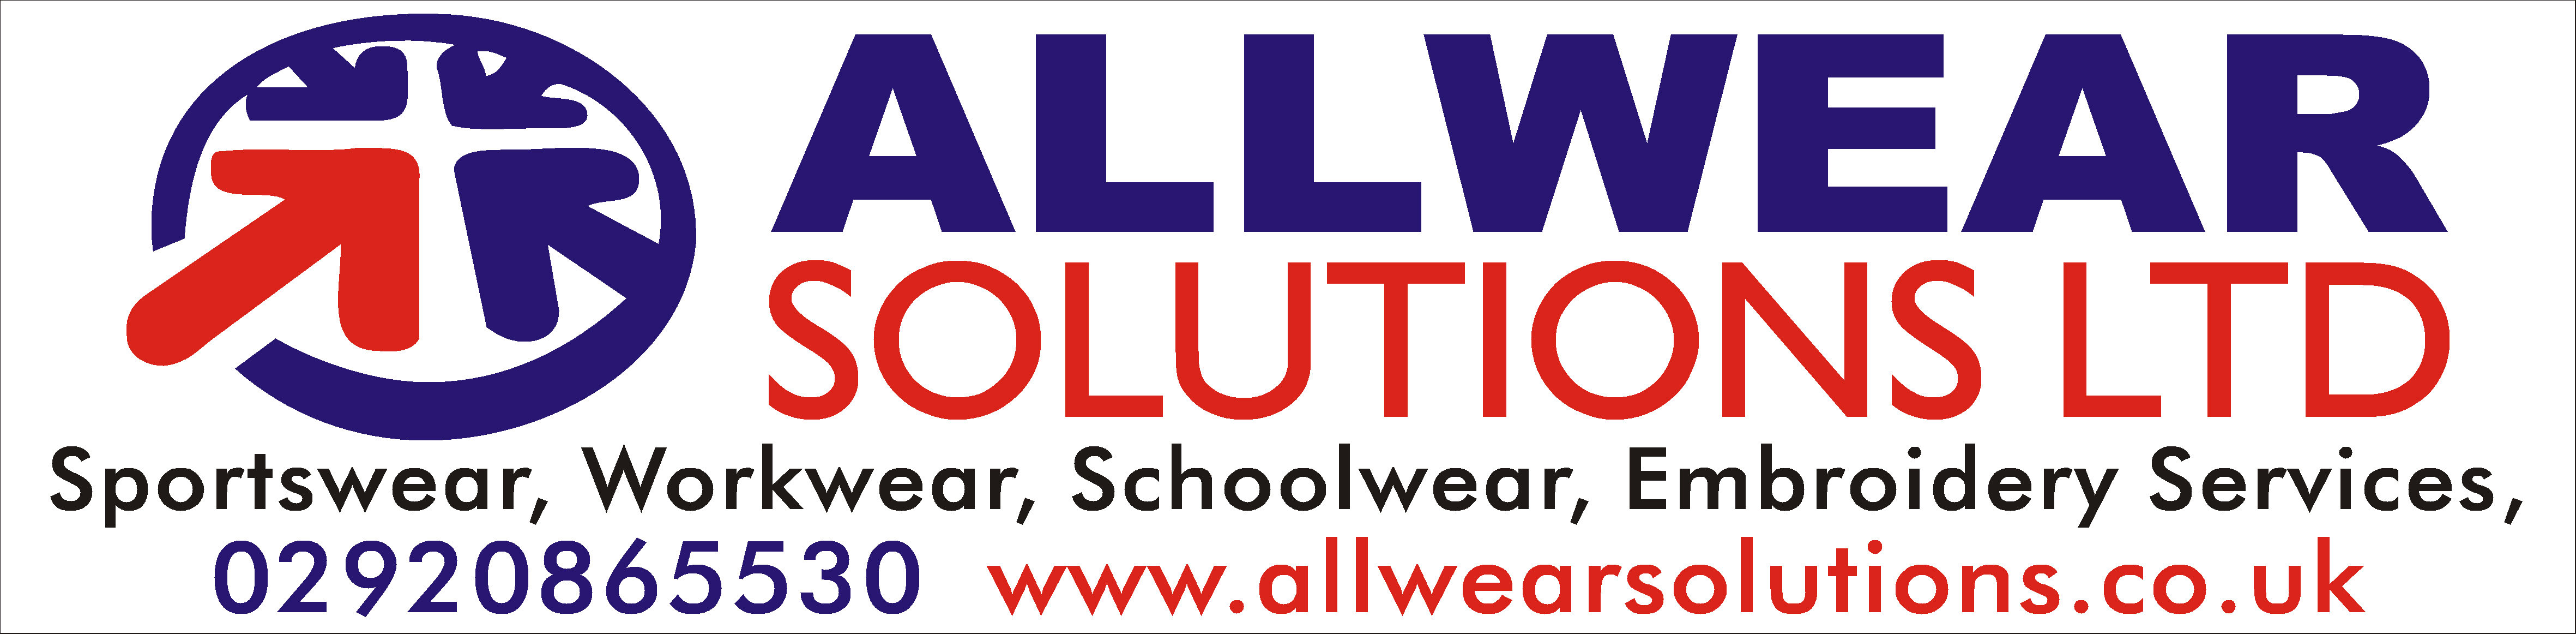 Allwear Solutions Ltd Coupons